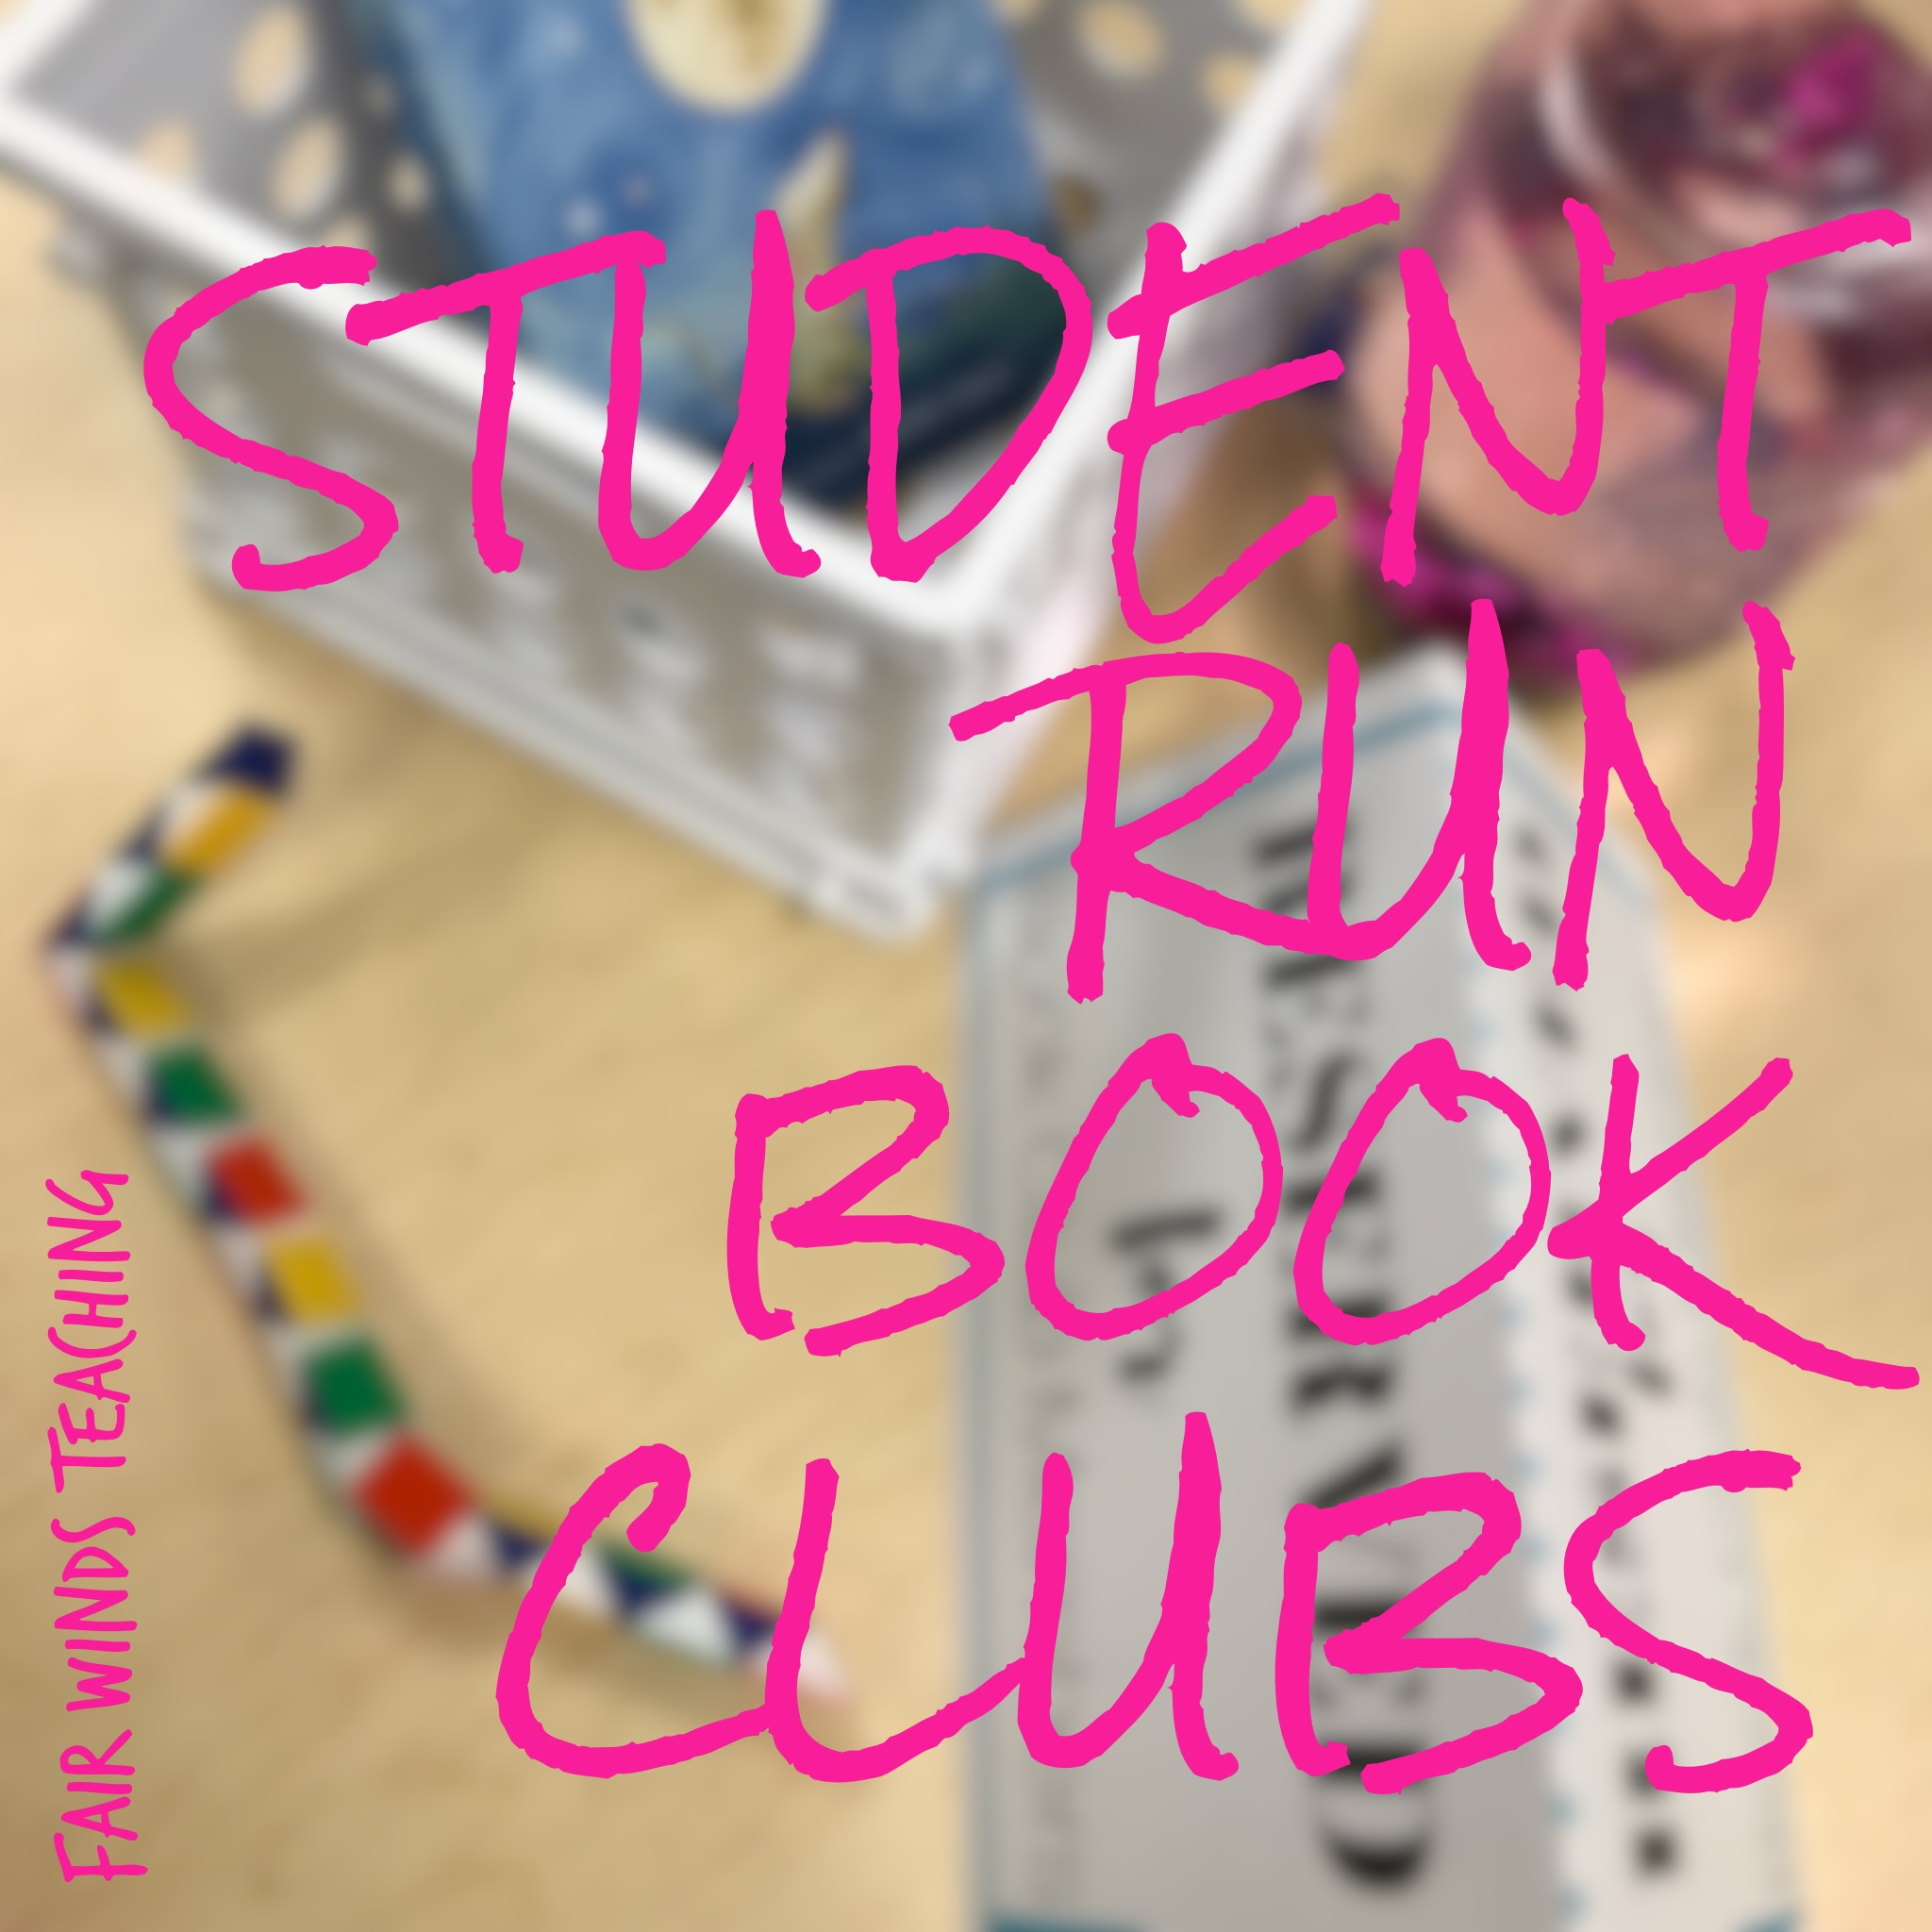 Book Clubs with Students